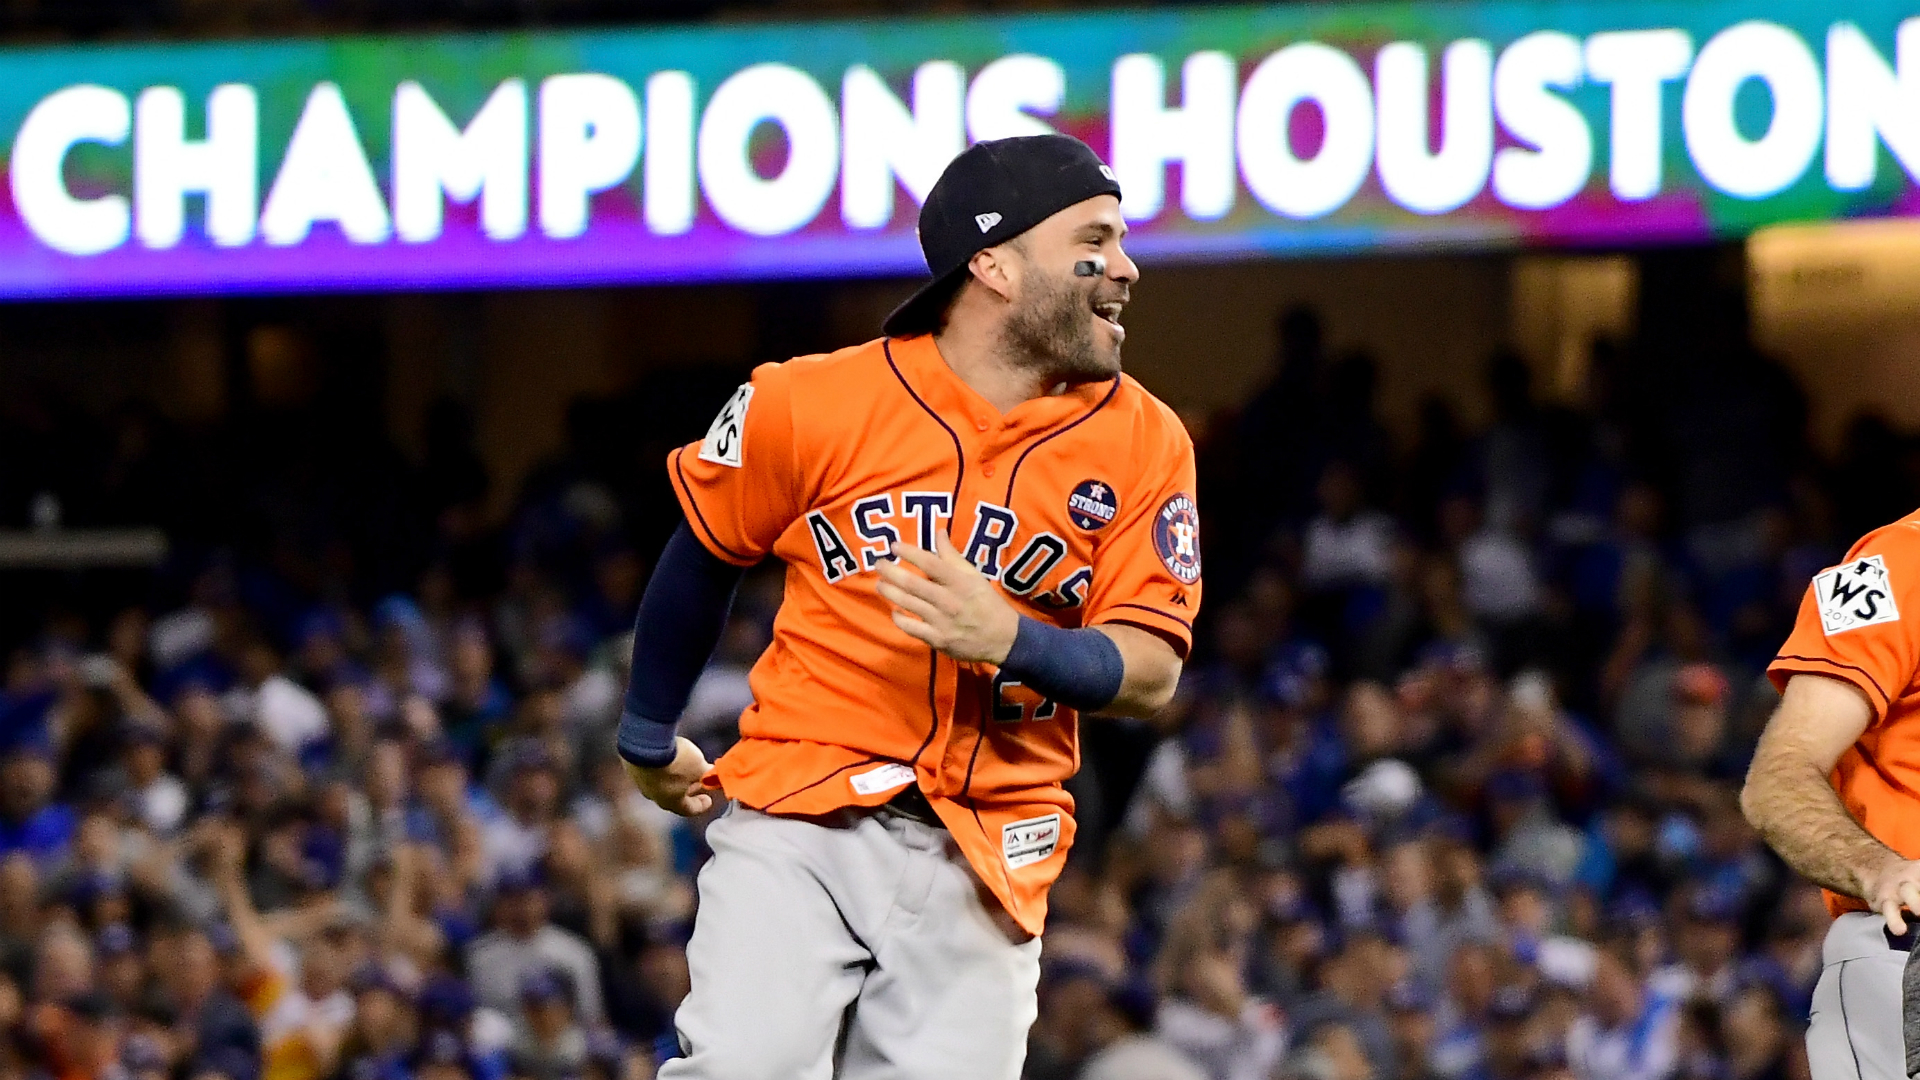 Jose Altuve reportedly to sign huge 5-year extension with Astros